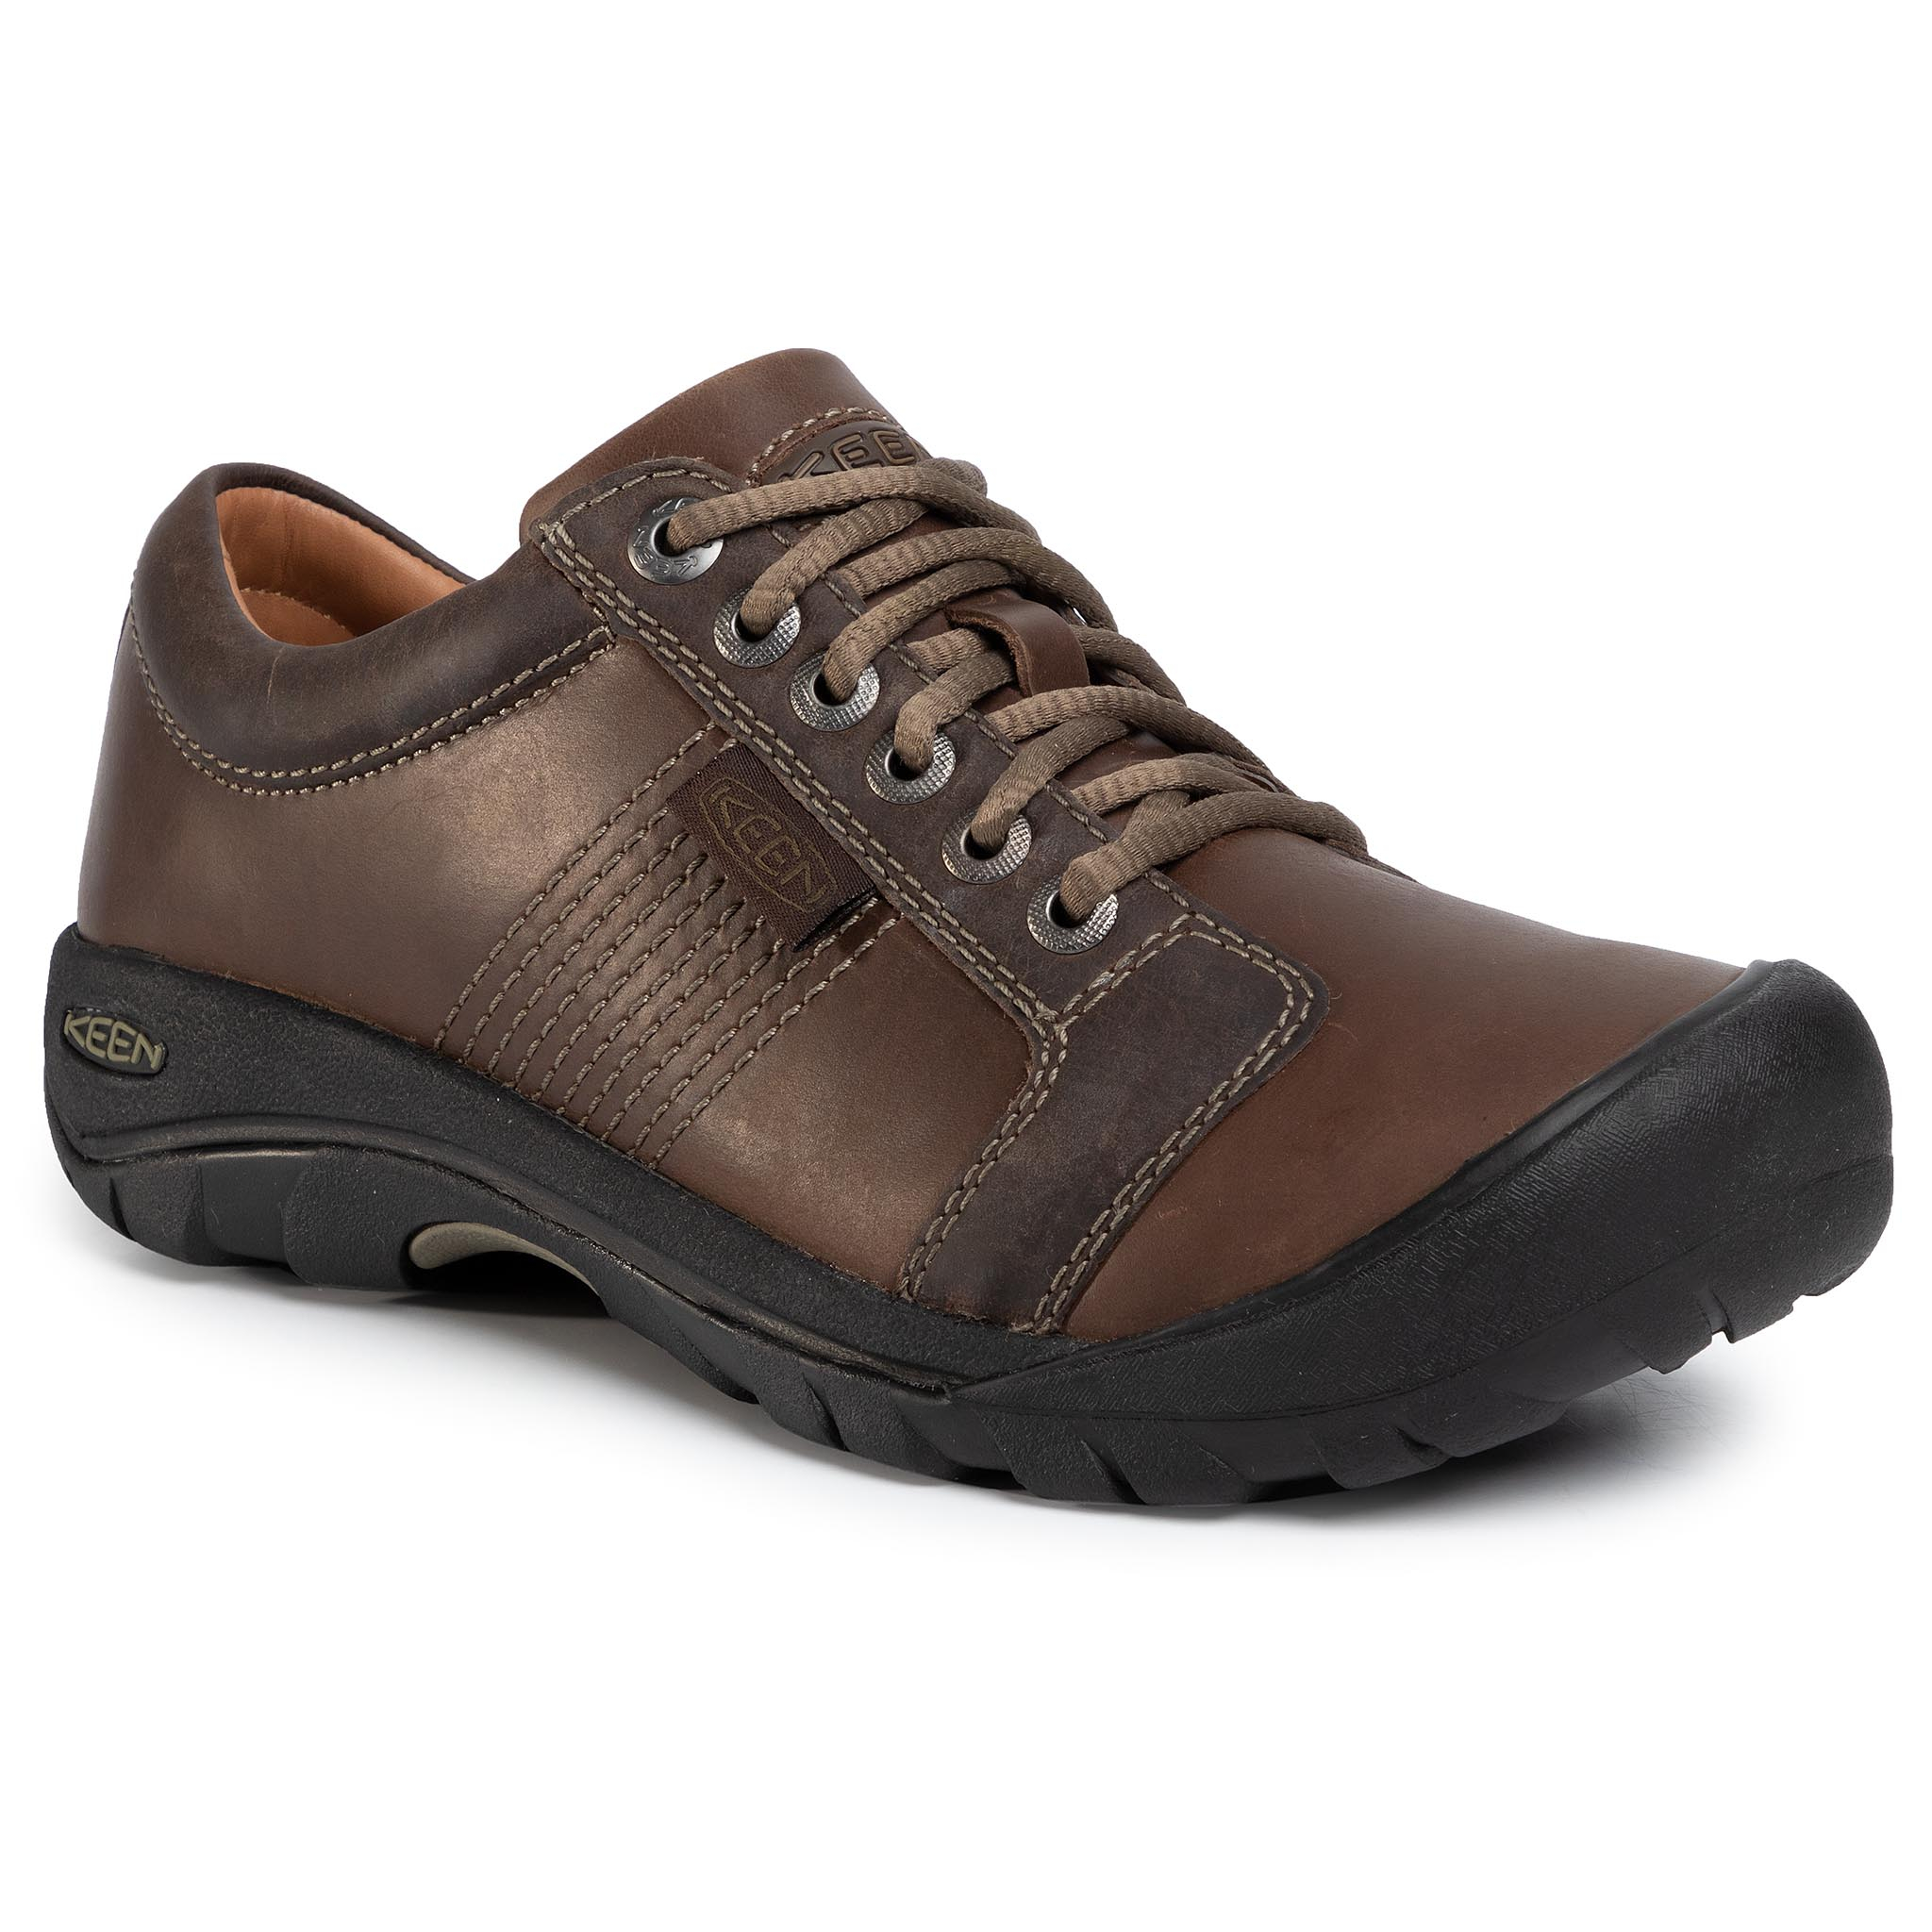 Trekkings Keen - Austin 1007722 Chocolate Brown imagine epantofi.ro 2021